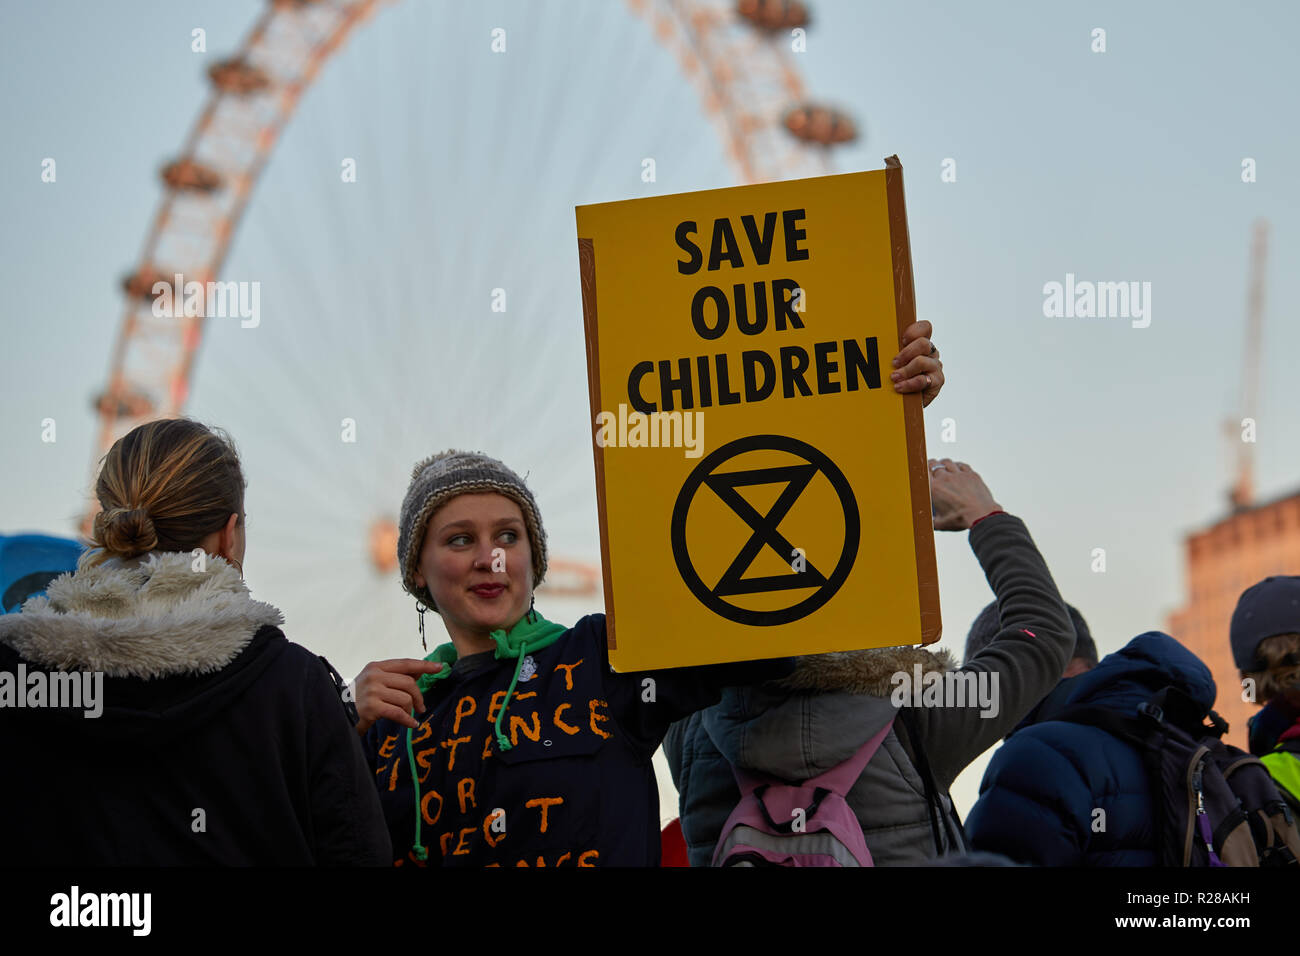 London, UK. - November 17, 2018: A protestor holds a banner on Westminster Bridge during the Extinction Rebellion Climate March. Credit: Kevin J. Frost/Alamy Live News - Stock Image